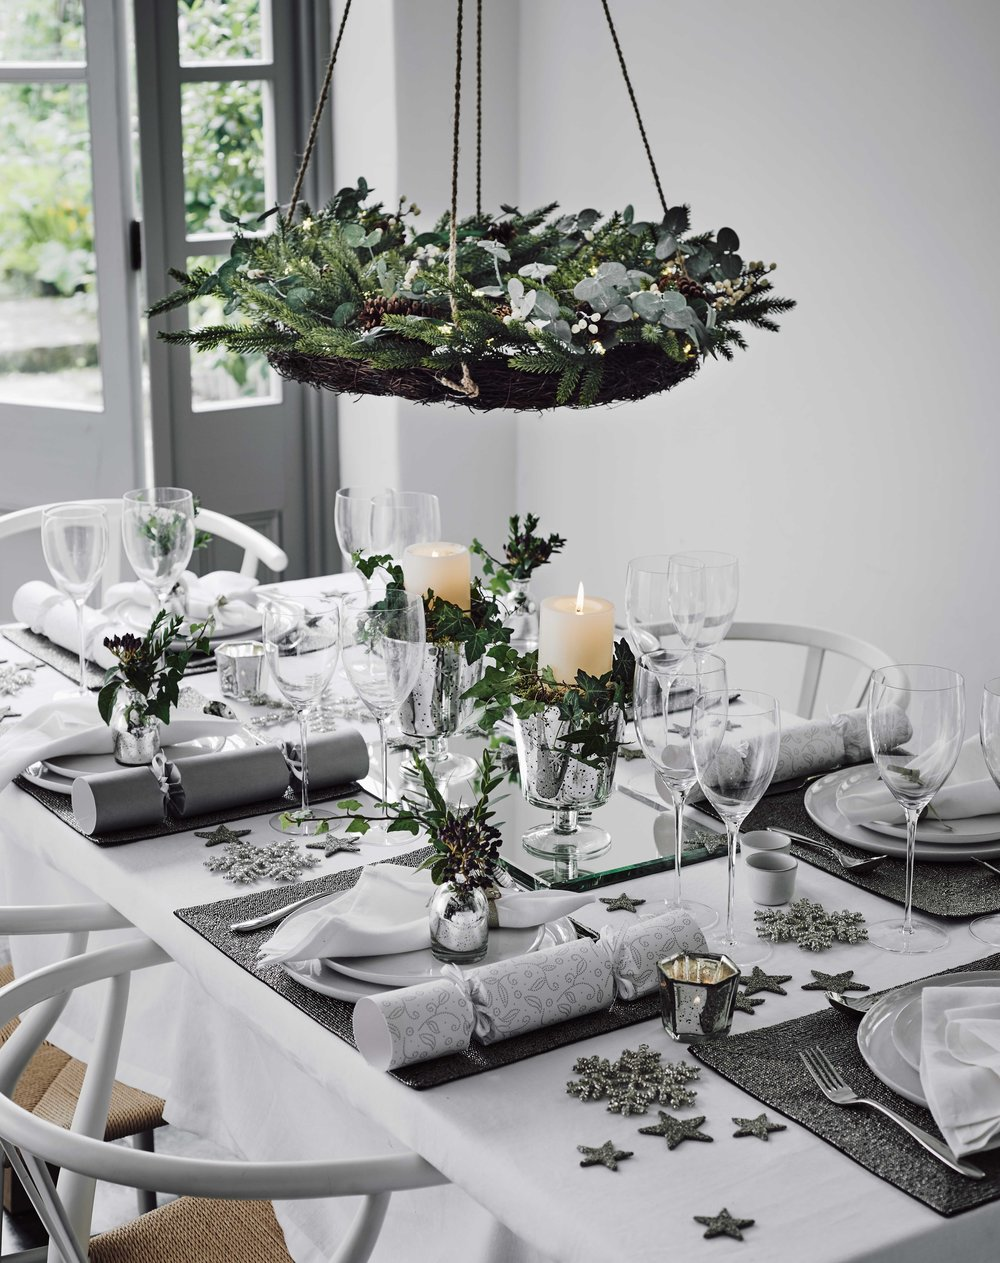 Image from The White Company